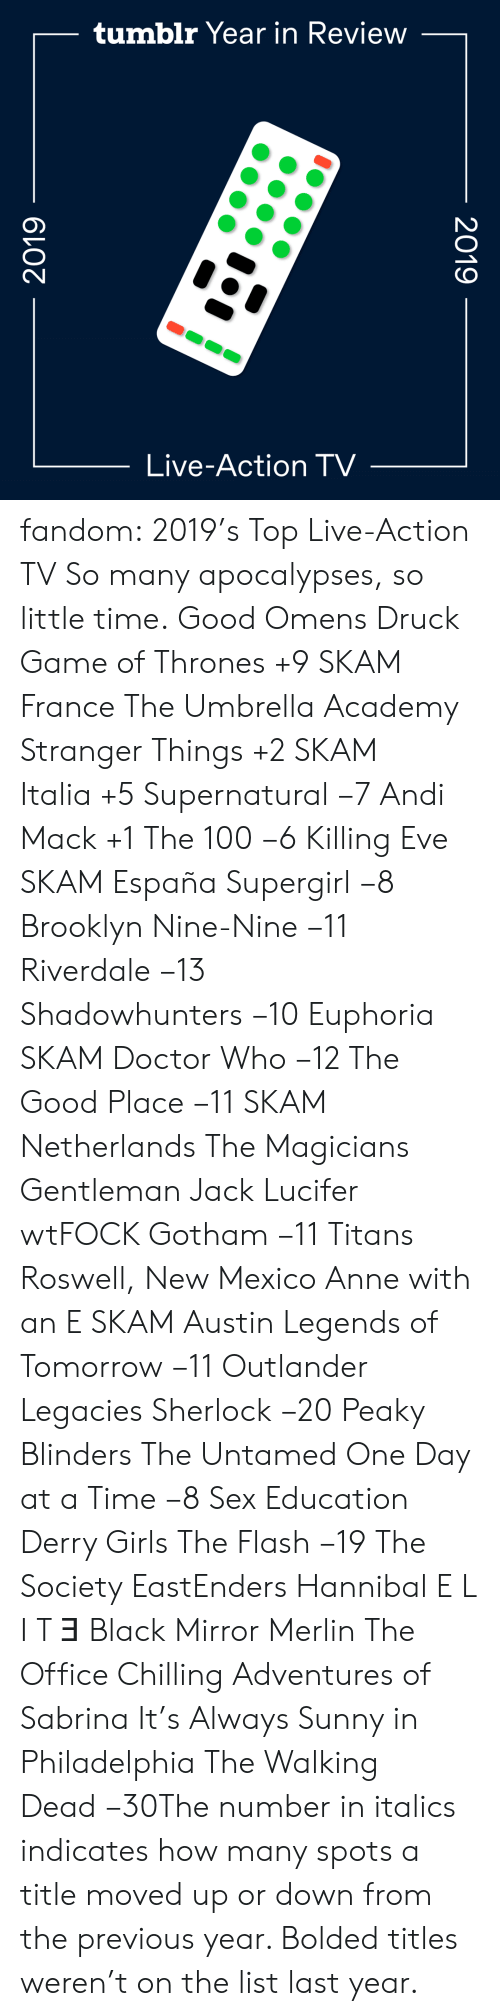 France: tumblr Year in Review  Live-Action TV-  2019  2019 fandom:  2019's Top Live-Action TV  So many apocalypses, so little time.  Good Omens  Druck  Game of Thrones +9  SKAM France  The Umbrella Academy  Stranger Things +2  SKAM Italia +5  Supernatural −7  Andi Mack +1  The 100 −6  Killing Eve   SKAM España  Supergirl −8  Brooklyn Nine-Nine −11  Riverdale −13  Shadowhunters −10  Euphoria  SKAM  Doctor Who −12  The Good Place −11  SKAM Netherlands  The Magicians  Gentleman Jack  Lucifer  wtFOCK  Gotham −11  Titans  Roswell, New Mexico  Anne with an E  SKAM Austin  Legends of Tomorrow −11  Outlander  Legacies  Sherlock −20  Peaky Blinders  The Untamed  One Day at a Time −8  Sex Education  Derry Girls  The Flash −19  The Society  EastEnders  Hannibal  E L I T Ǝ  Black Mirror  Merlin  The Office  Chilling Adventures of Sabrina  It's Always Sunny in Philadelphia The Walking Dead −30The number in italics indicates how many spots a title moved up or down from the previous year. Bolded titles weren't on the list last year.